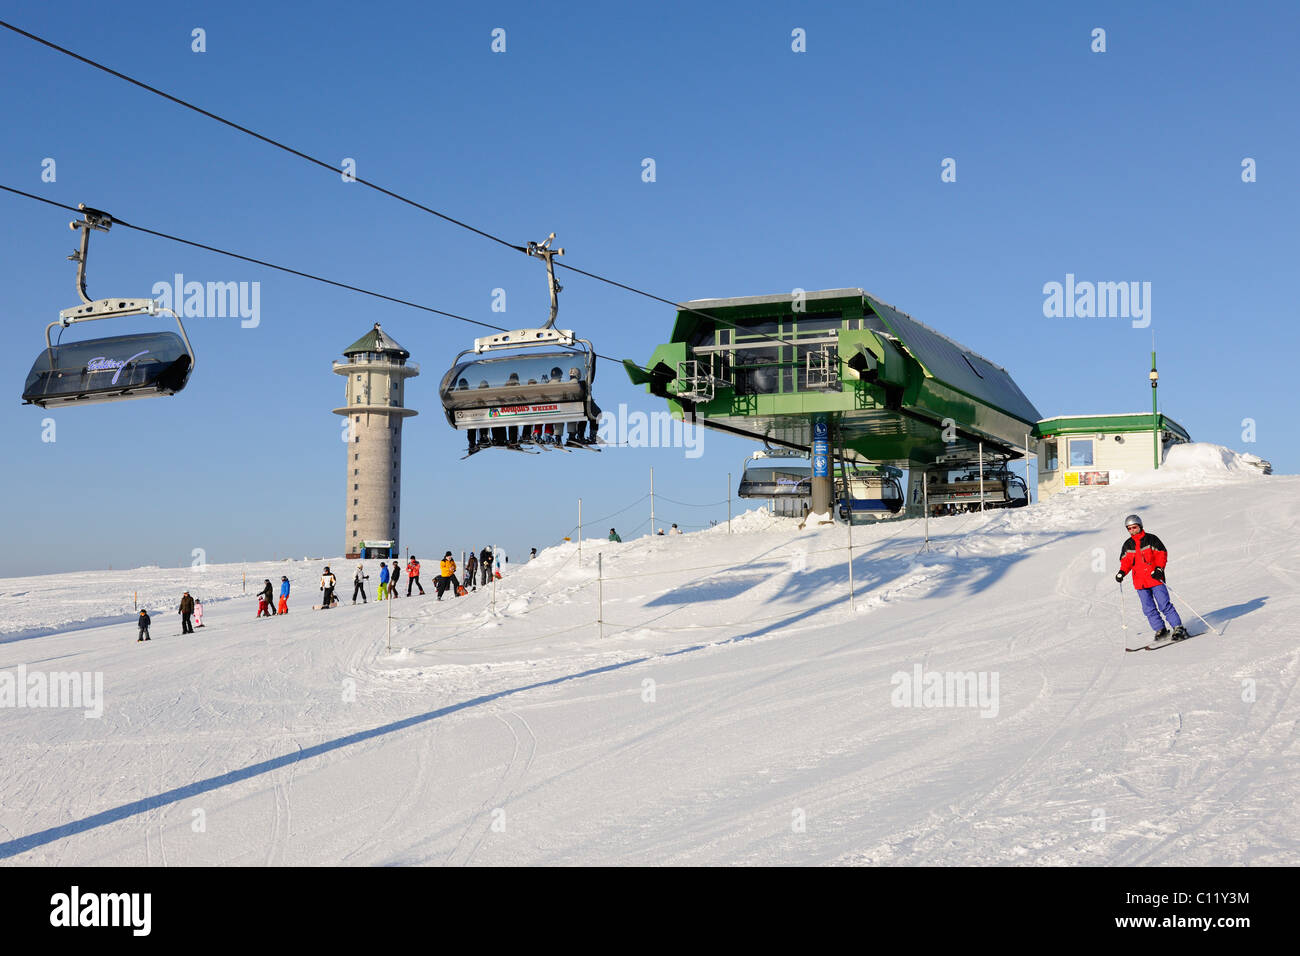 Skilift on Mt Feldberg, southern Black Forest, Baden-Wuerttemberg, Germany, Europe Stock Photo